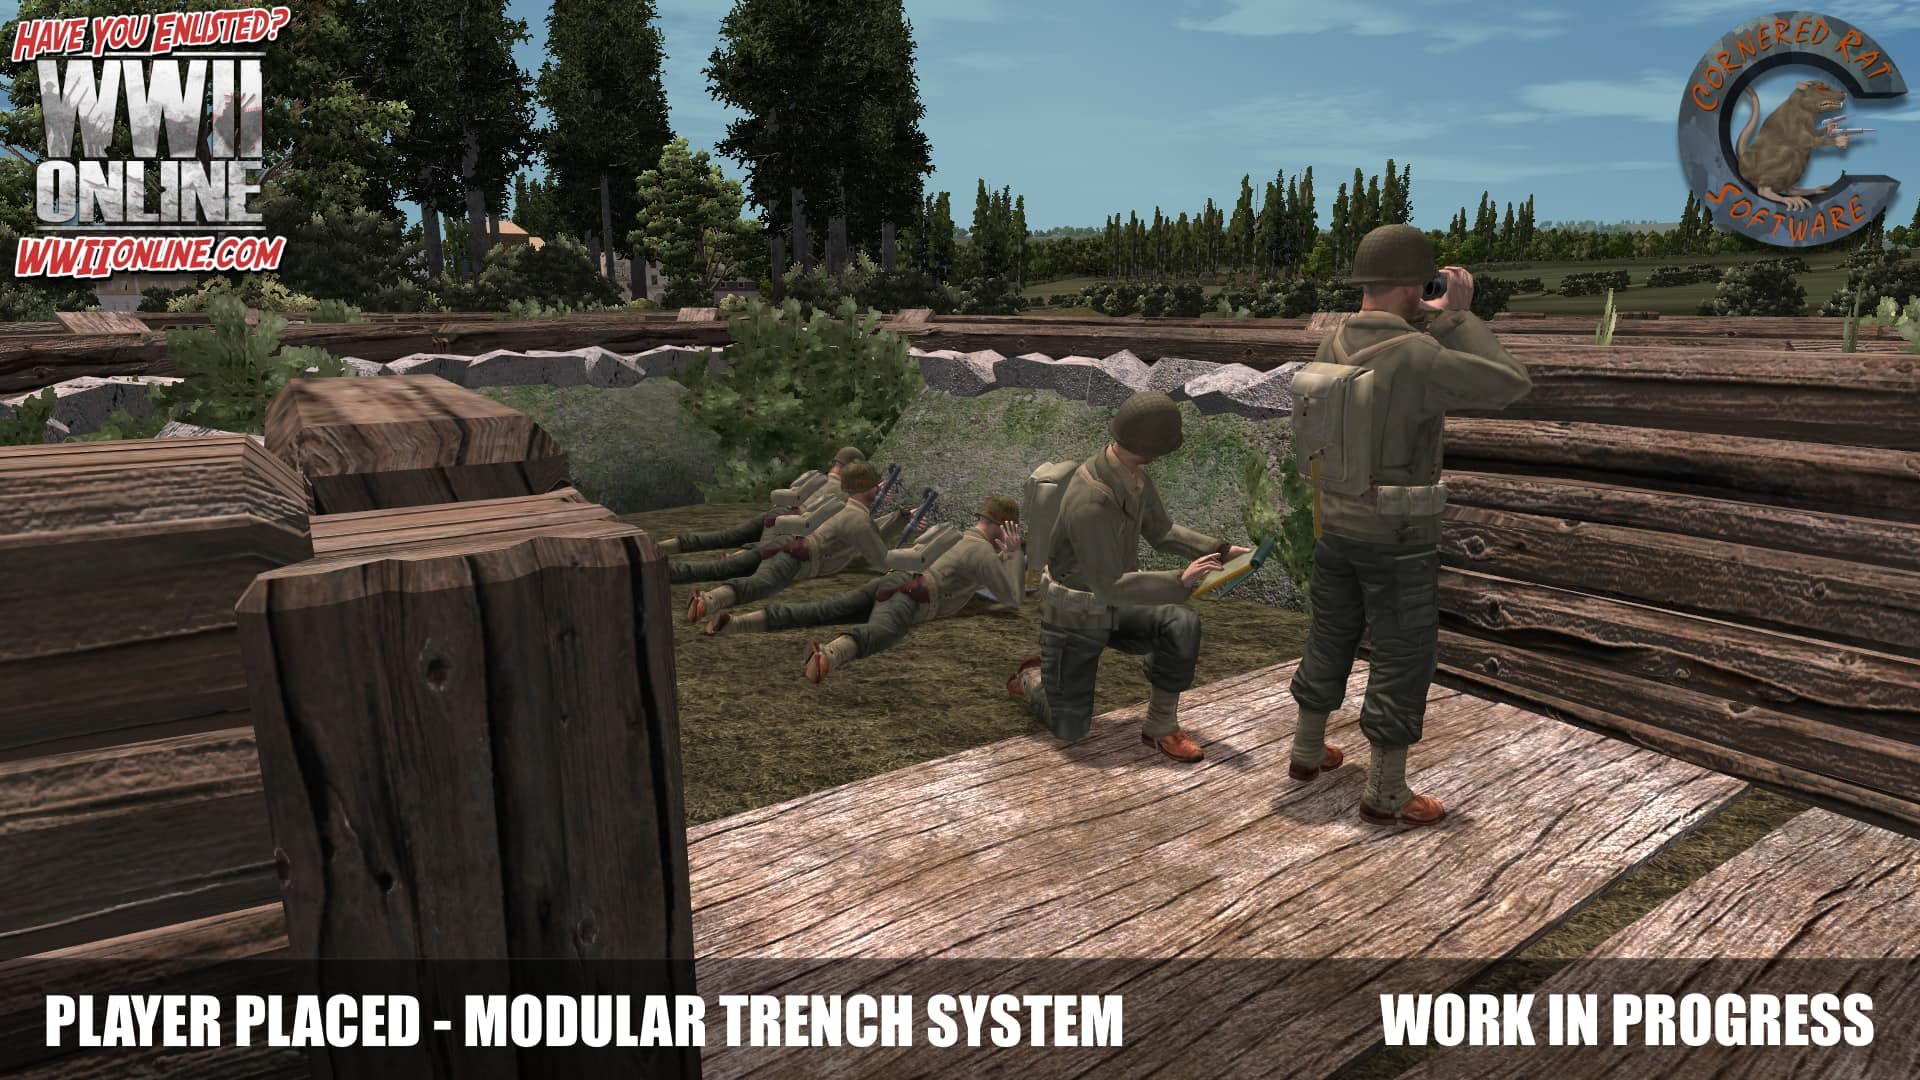 Modular Trench System Explanation